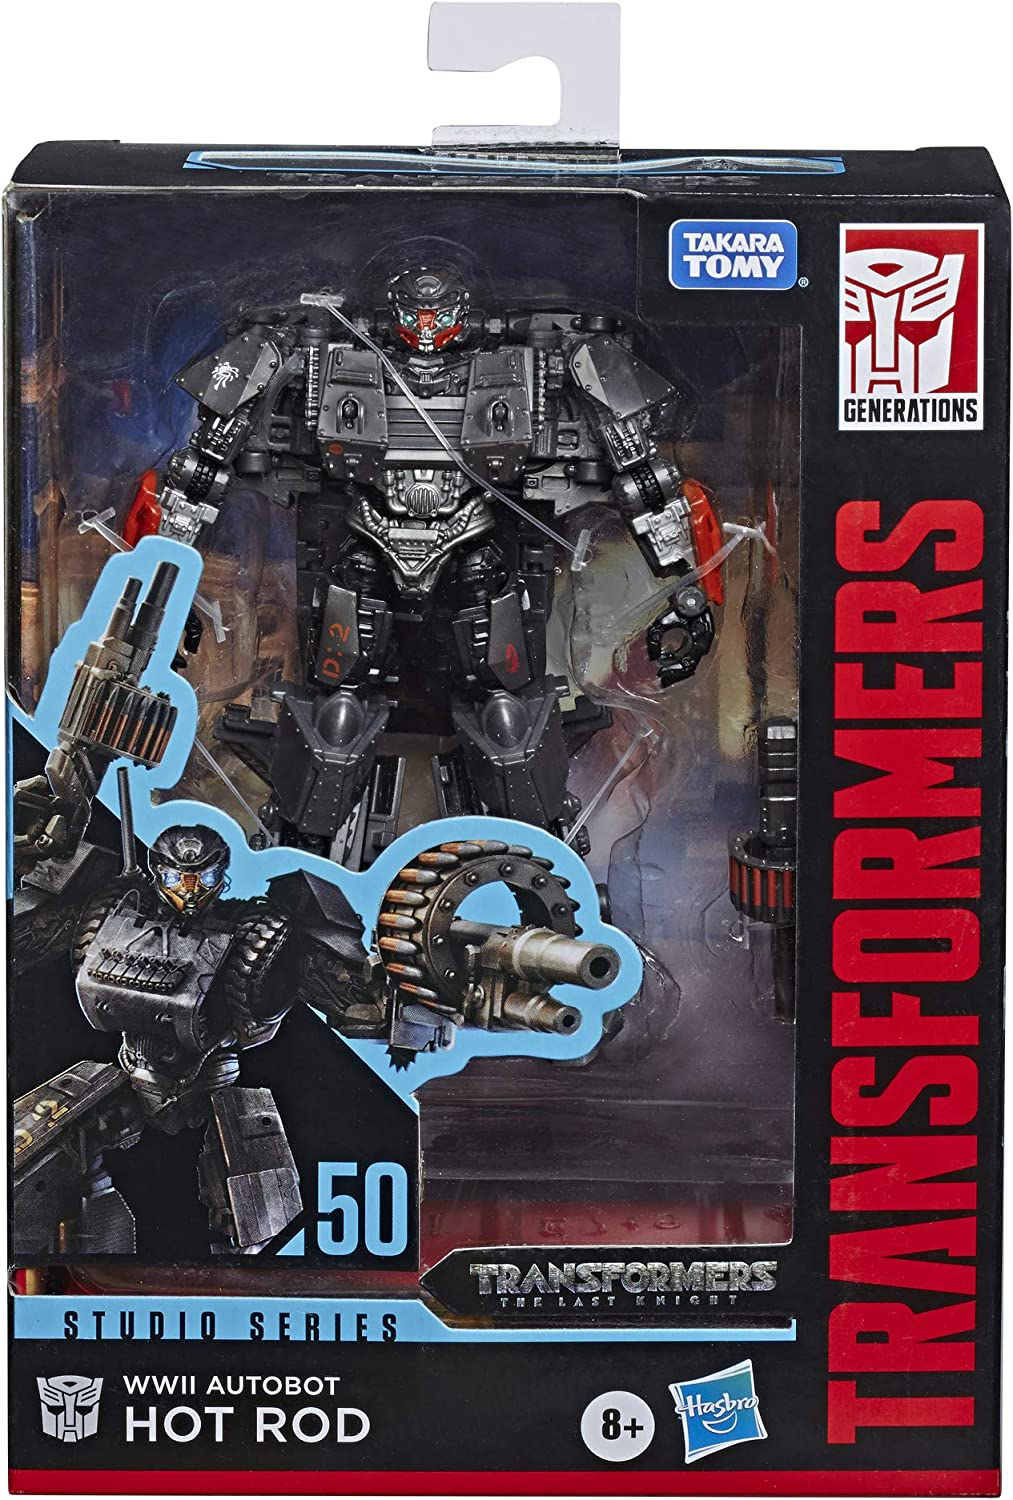 """Transformers Toys Studio Series 50 Deluxe The Last Knight Movie WWII Autobot Hot Rod Action Figure - Ages 8 & Up, 4.5"""""""